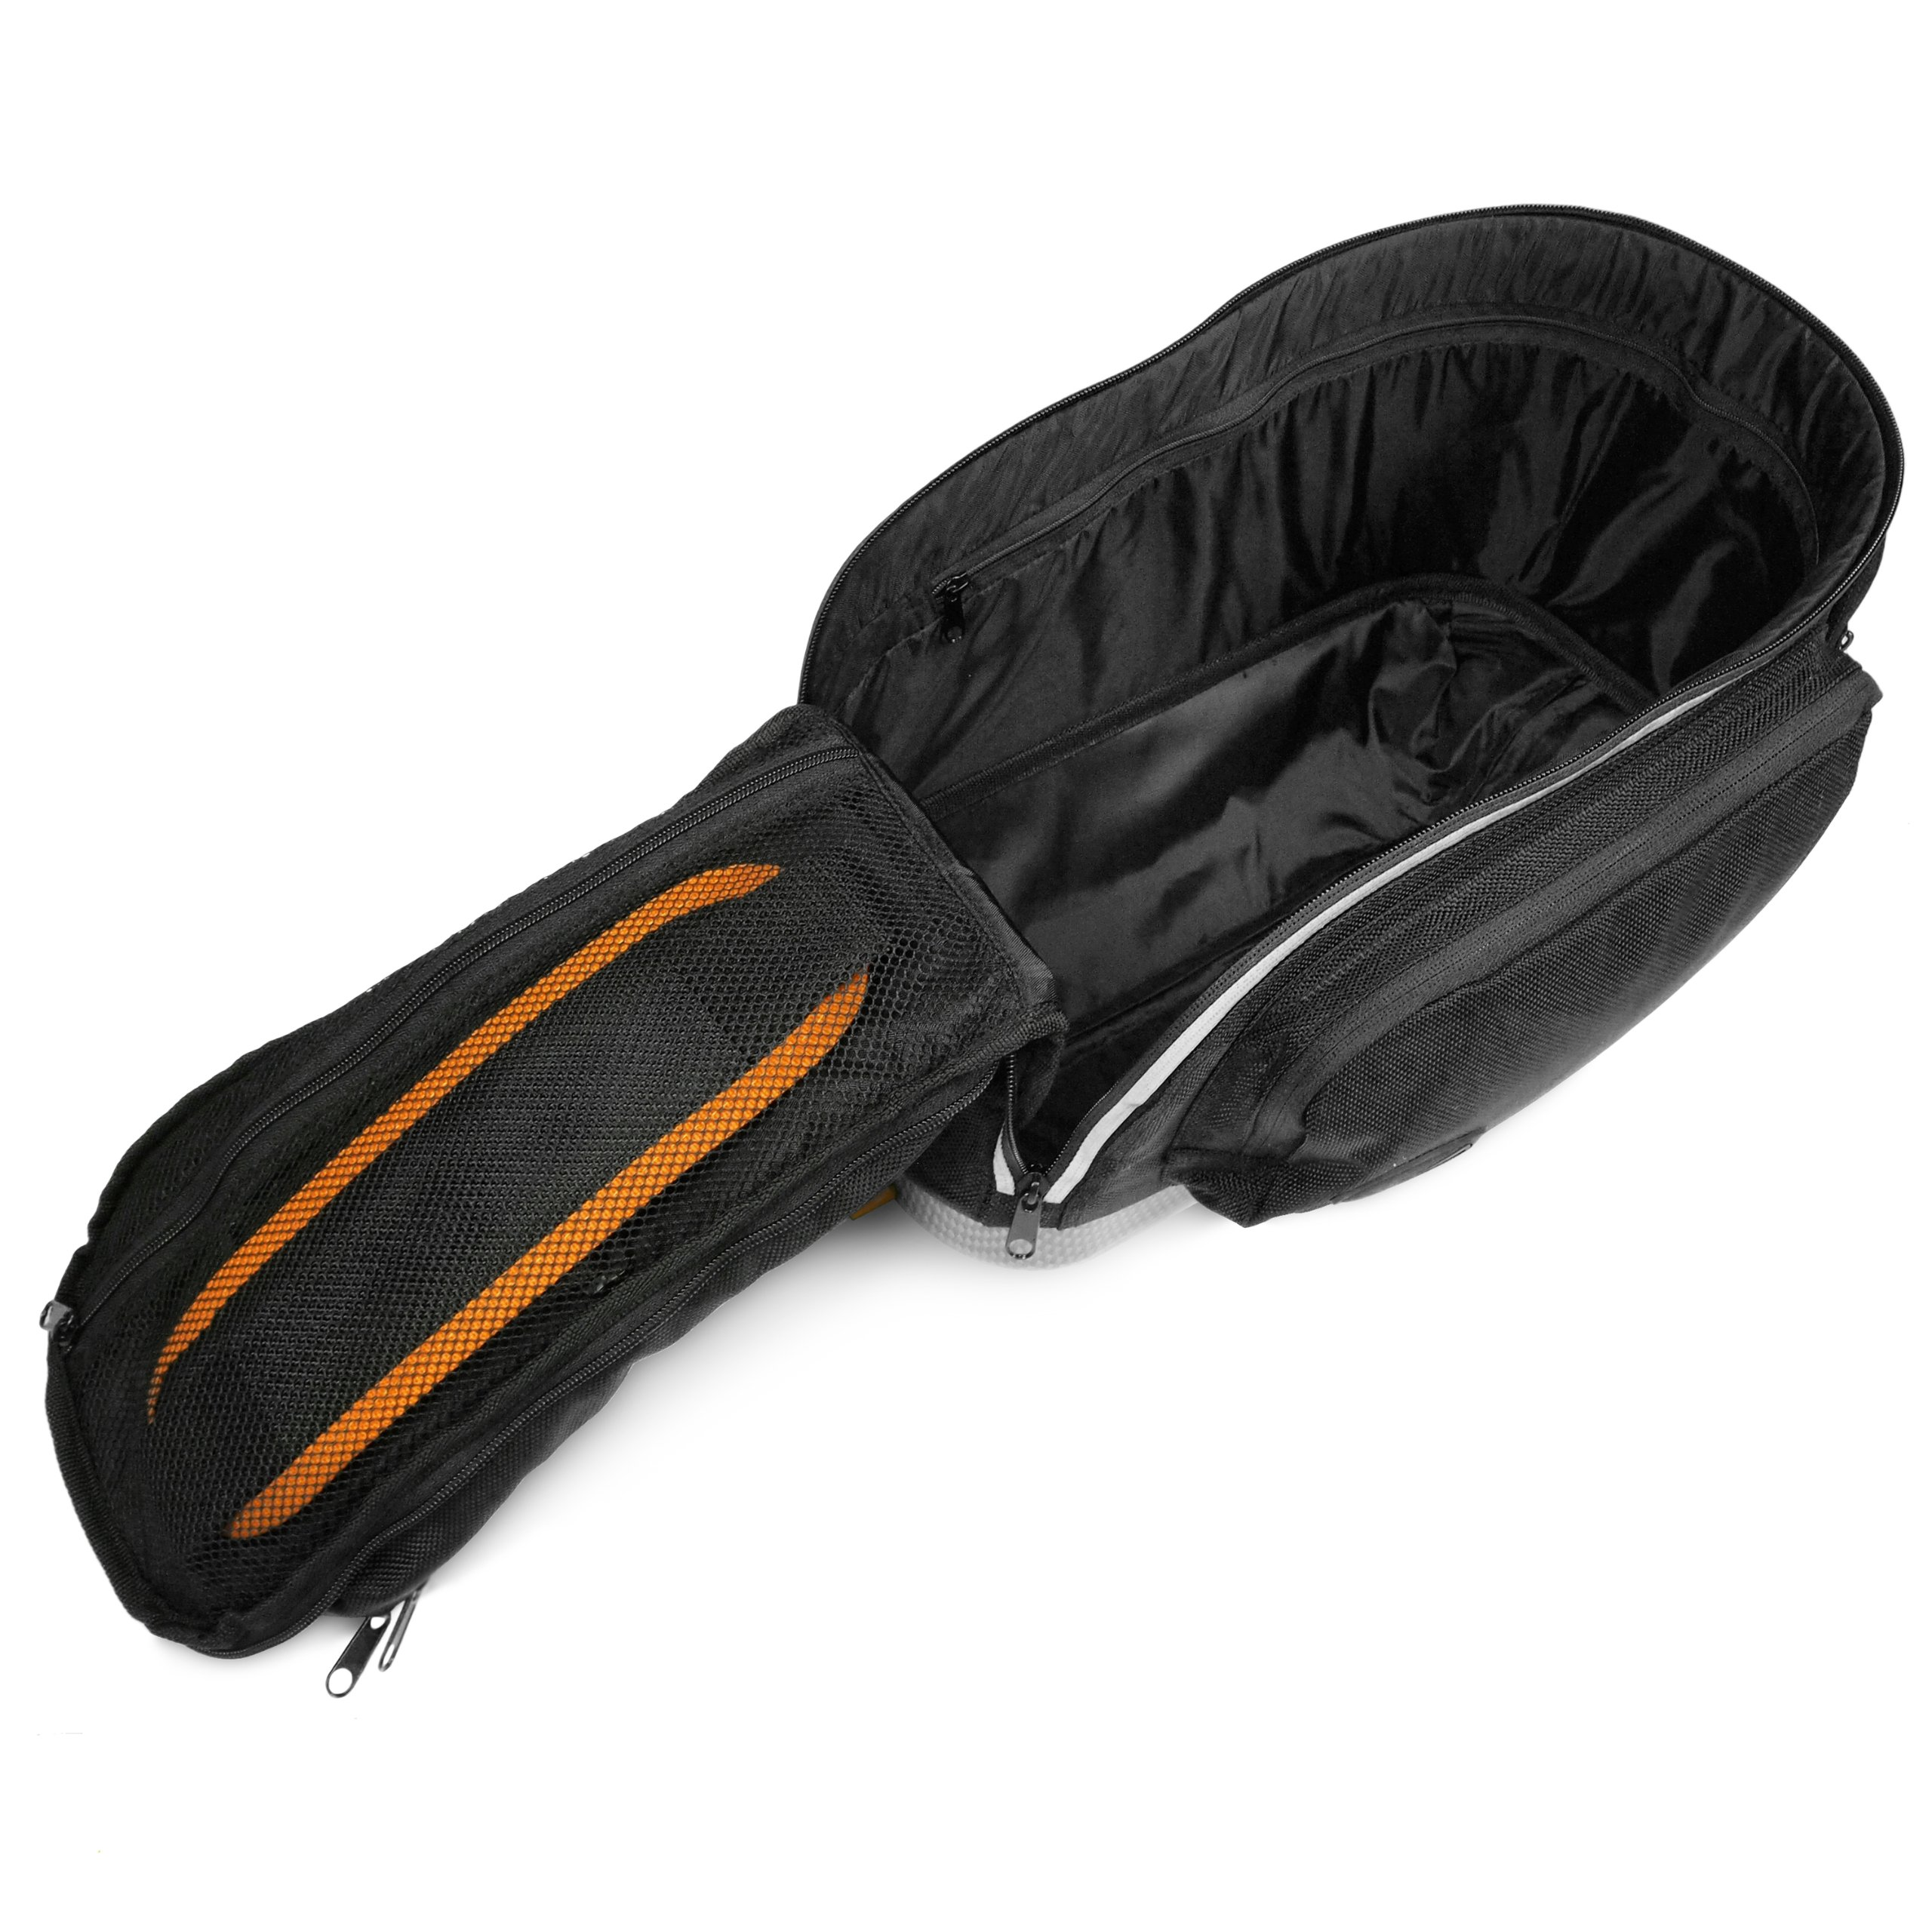 Ibera PakRak Bicycle Seat Post Commuter Rack and Quick-Release Bag by Ibera (Image #4)